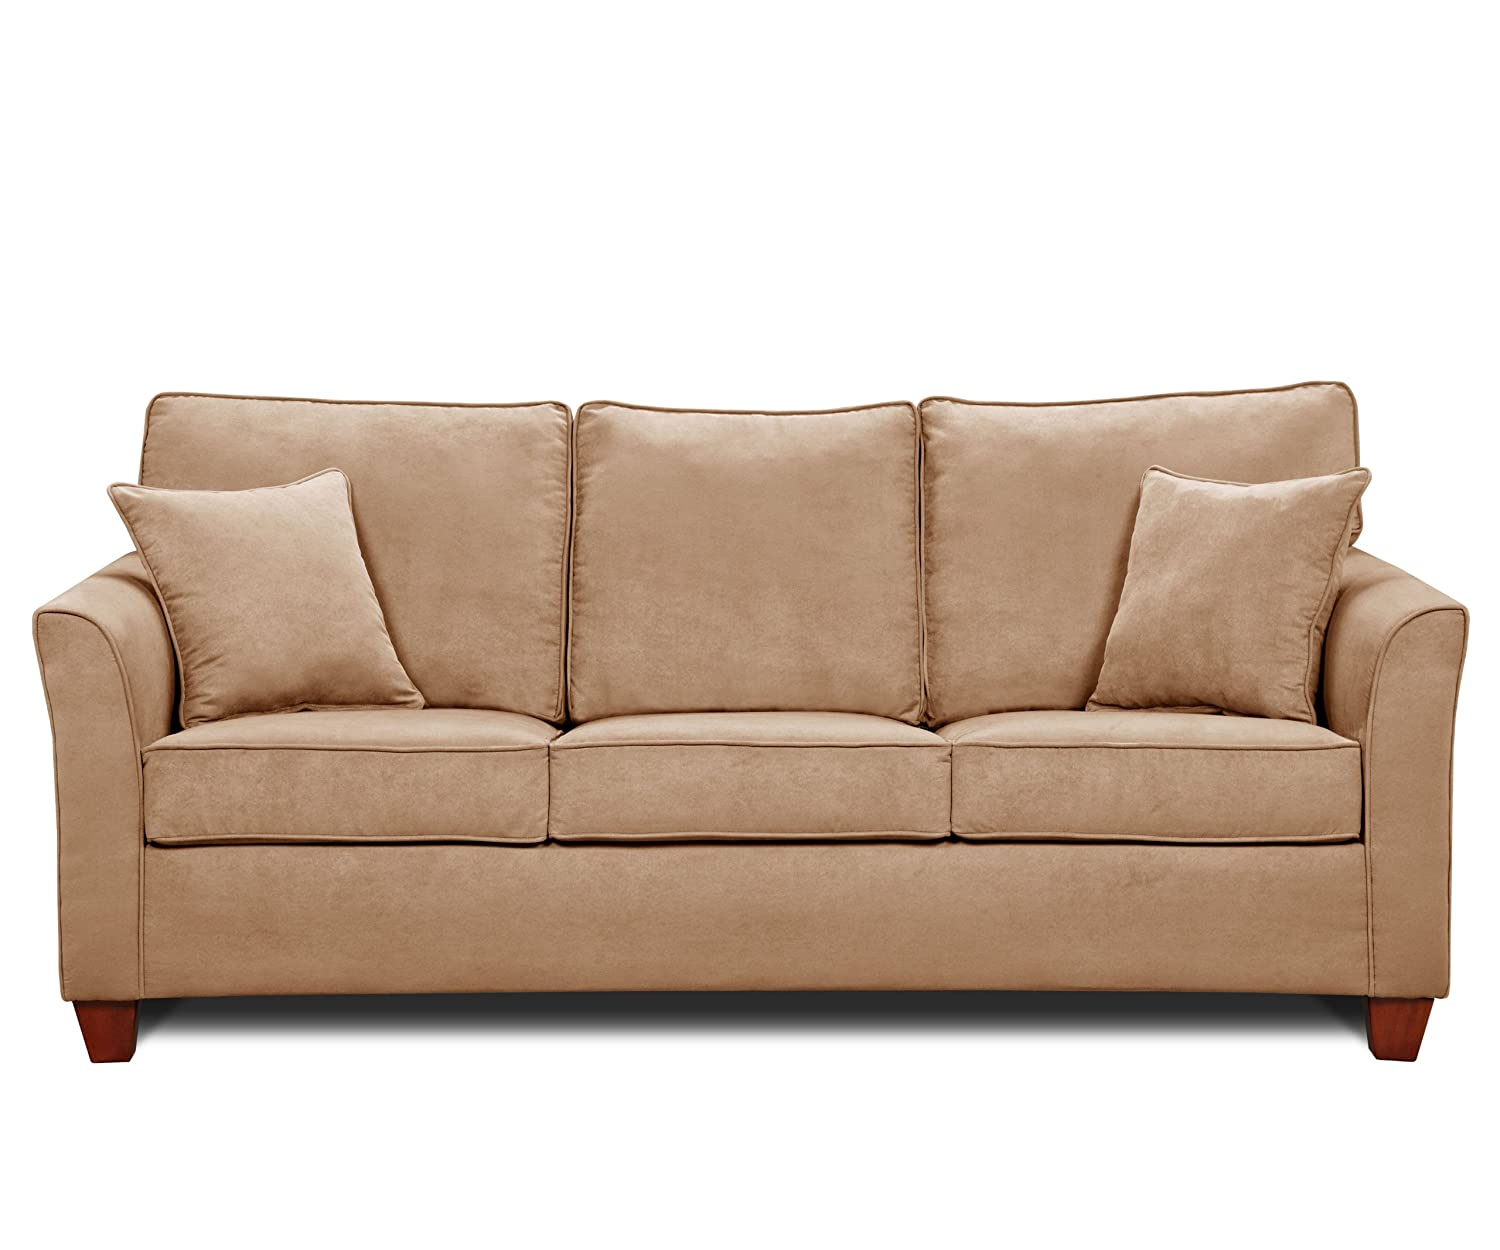 Simmons Micro Fiber Taupe Queen Size Size Sofa Sleeper